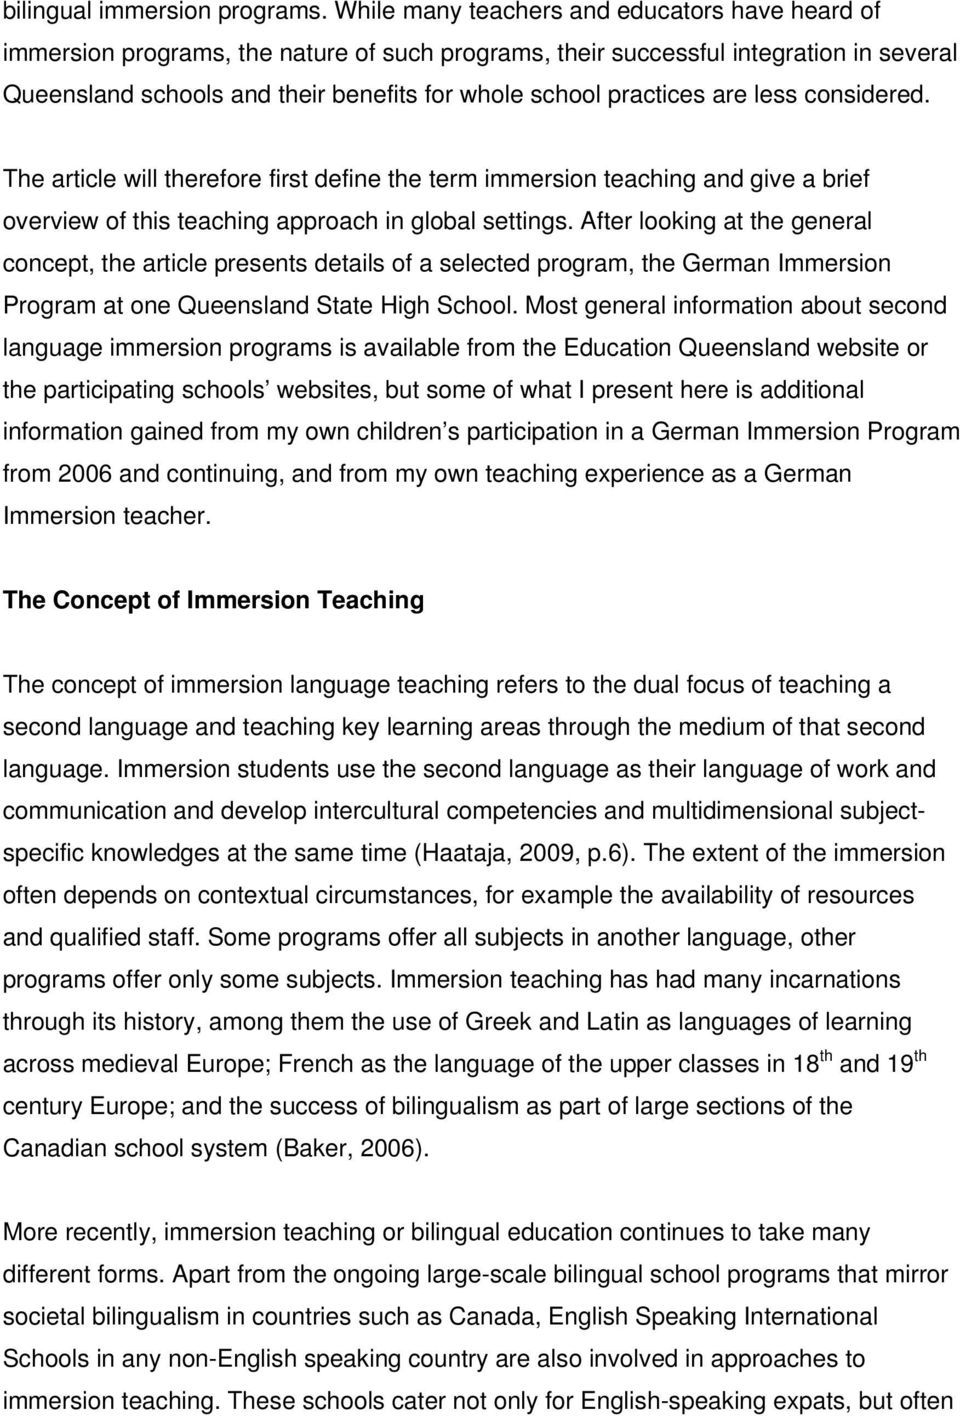 practices are less considered. The article will therefore first define the term immersion teaching and give a brief overview of this teaching approach in global settings.